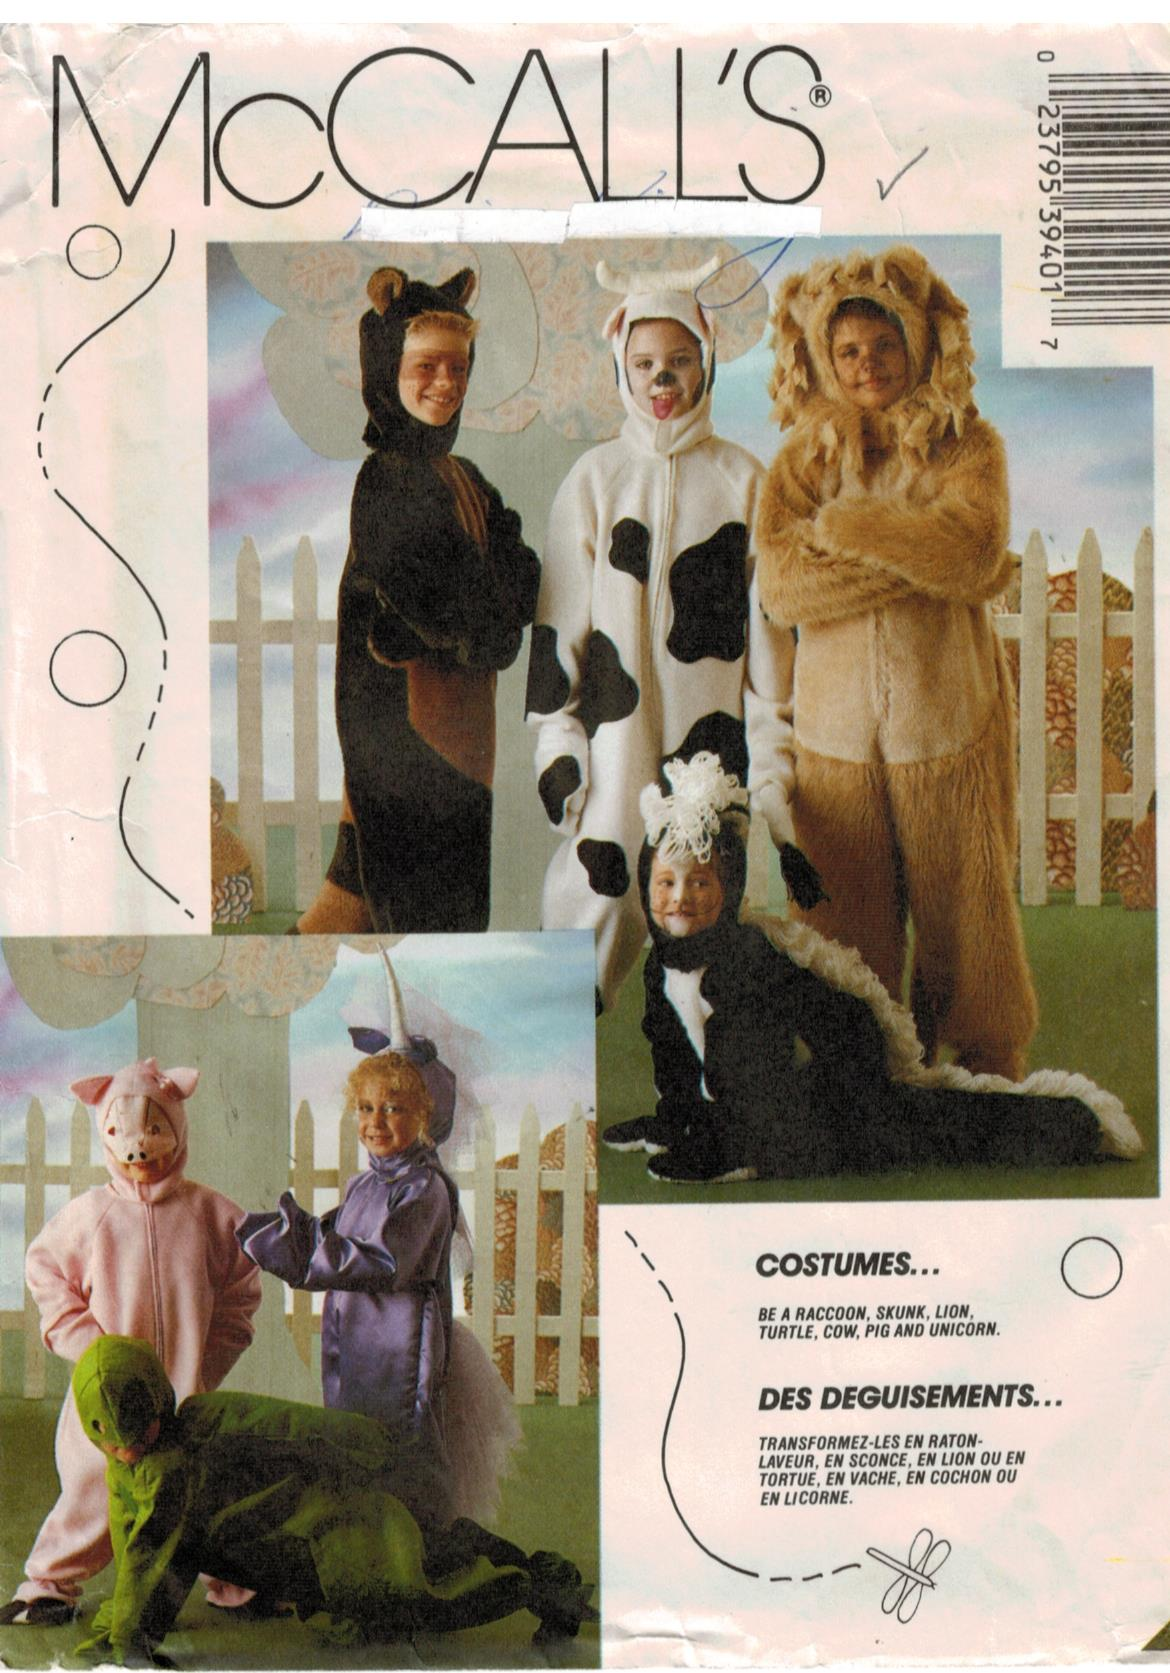 Cow sewing pattern heaven mccalls pattern 3940 animal costume patterns for kids raccoon skunk lion turtle cow pig unicorn size 2 4 jeuxipadfo Images